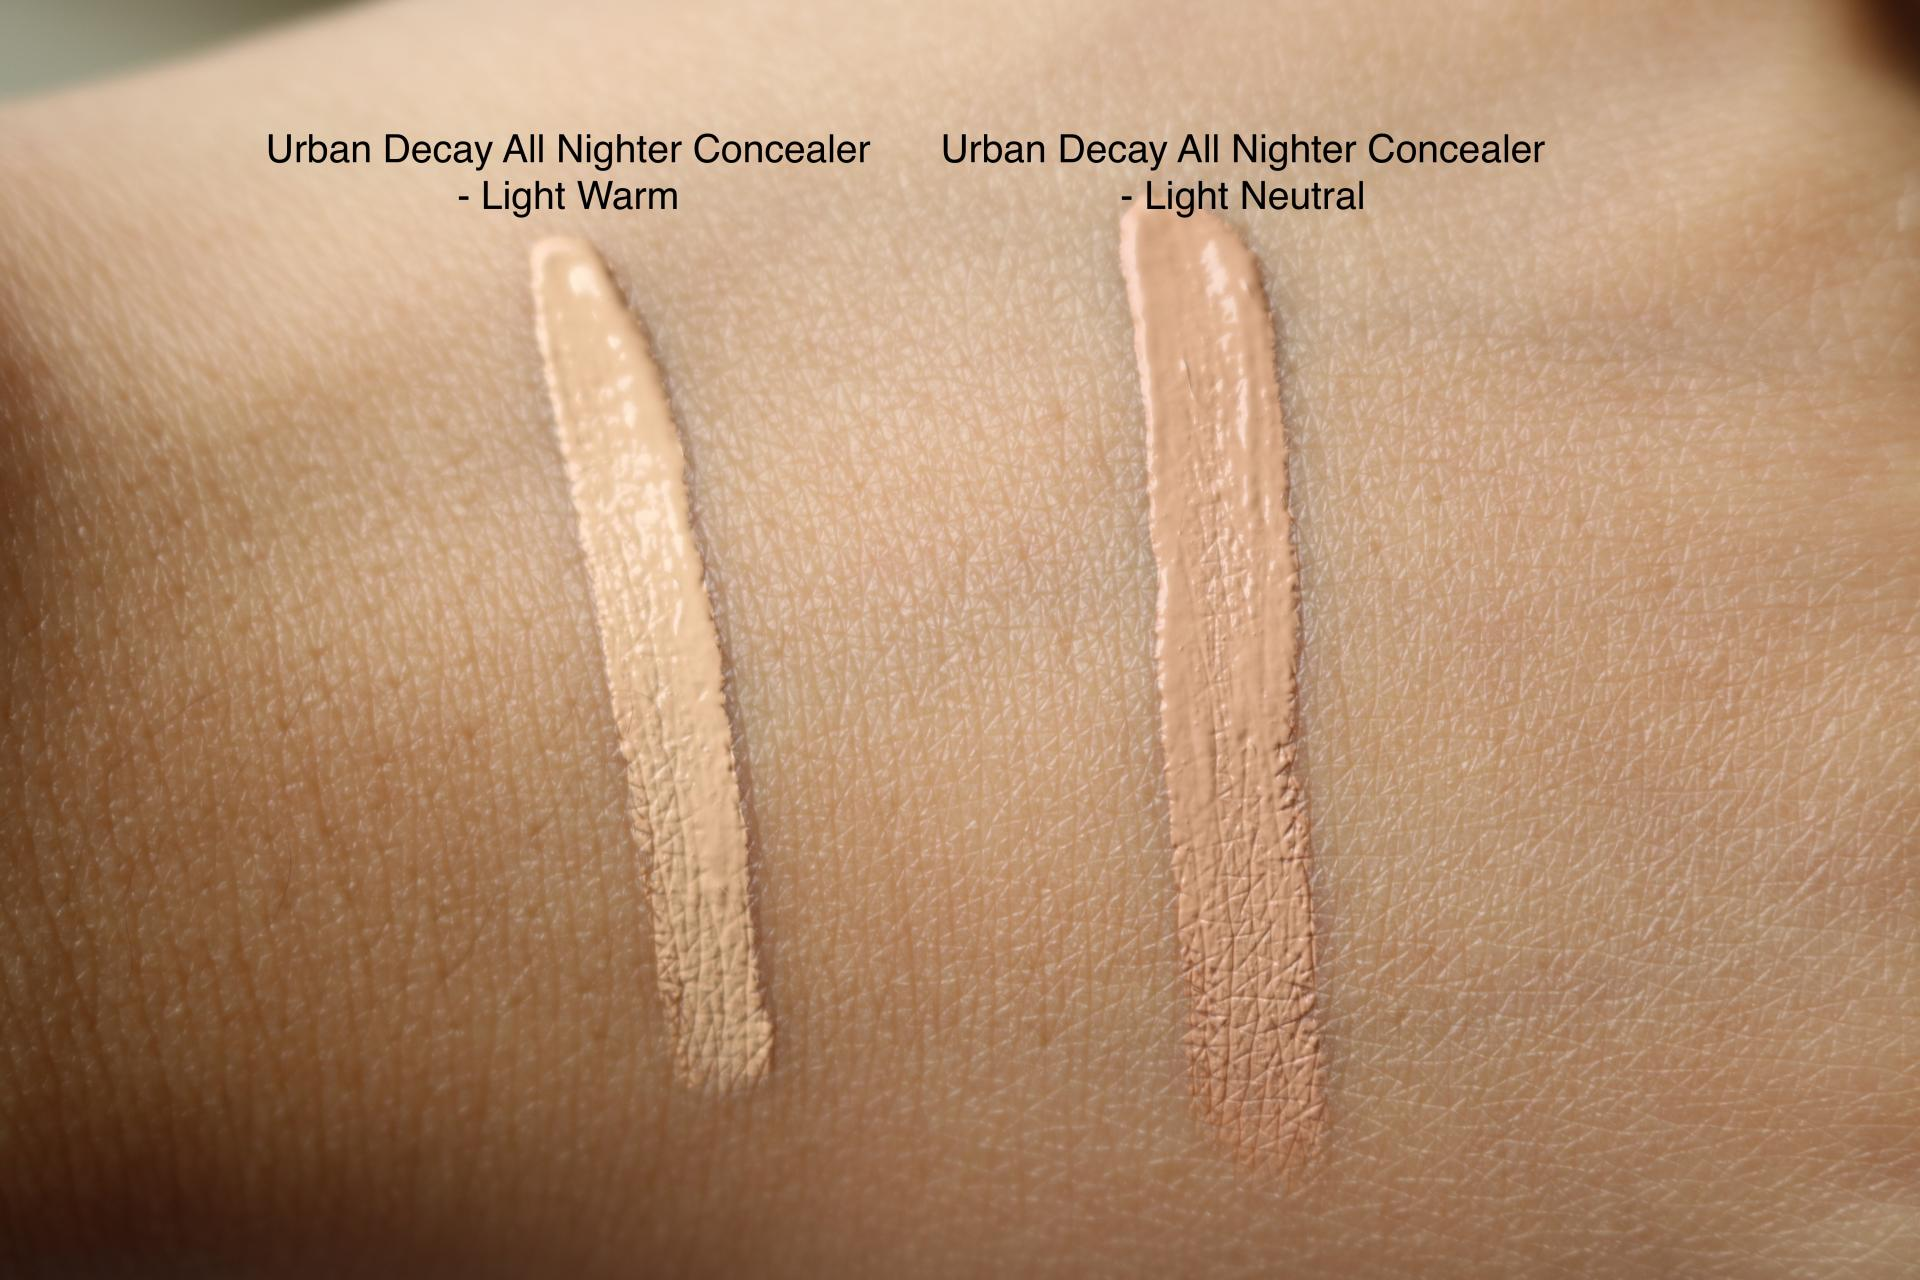 All Nighter Concealer Swatches